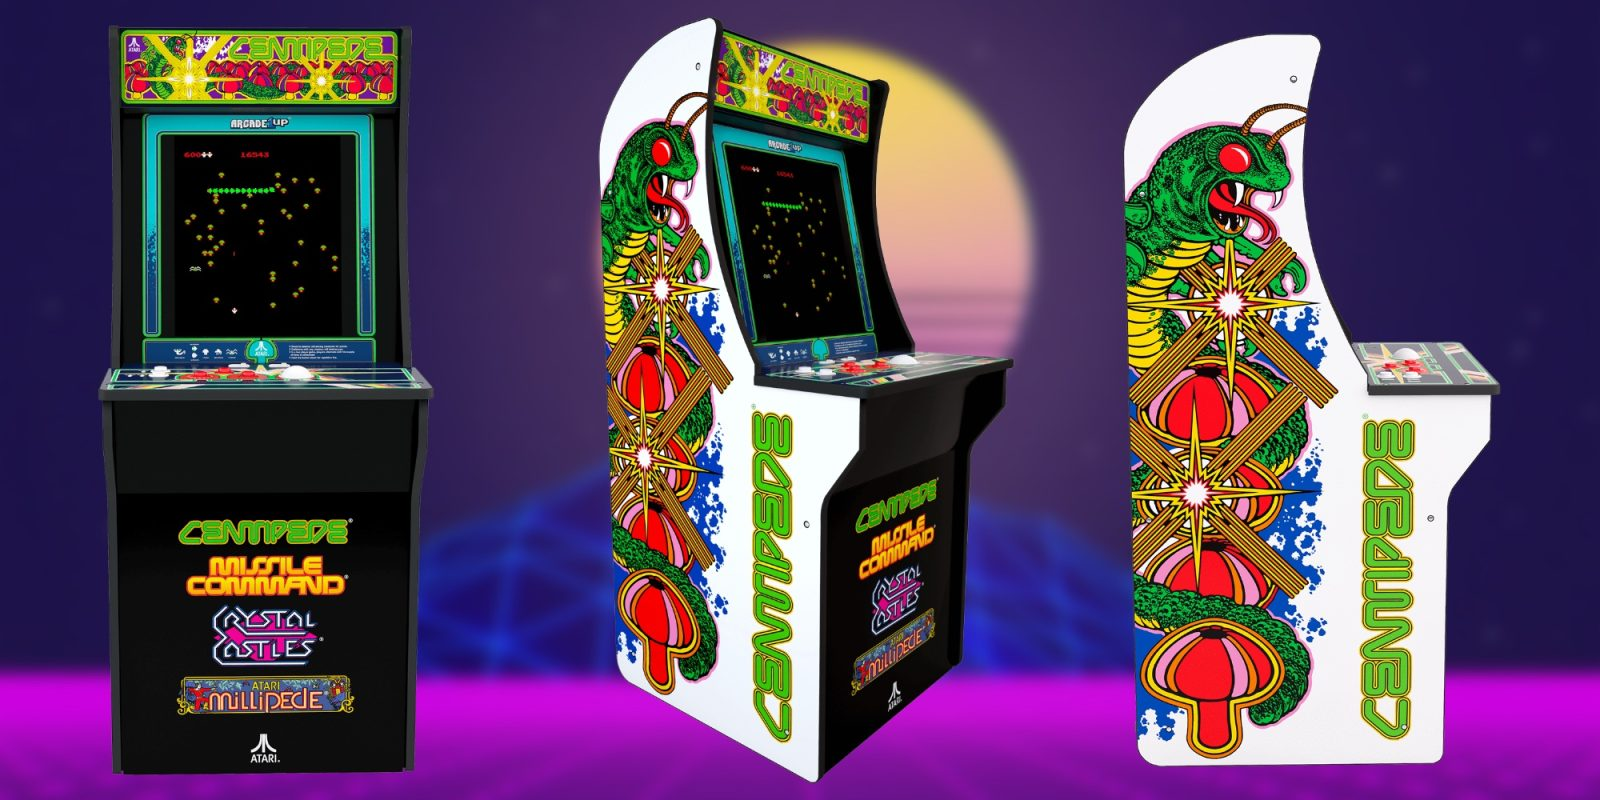 Every game room needs Arcade1Up's Centipede Arcade Cabinet at $175 (30% off)